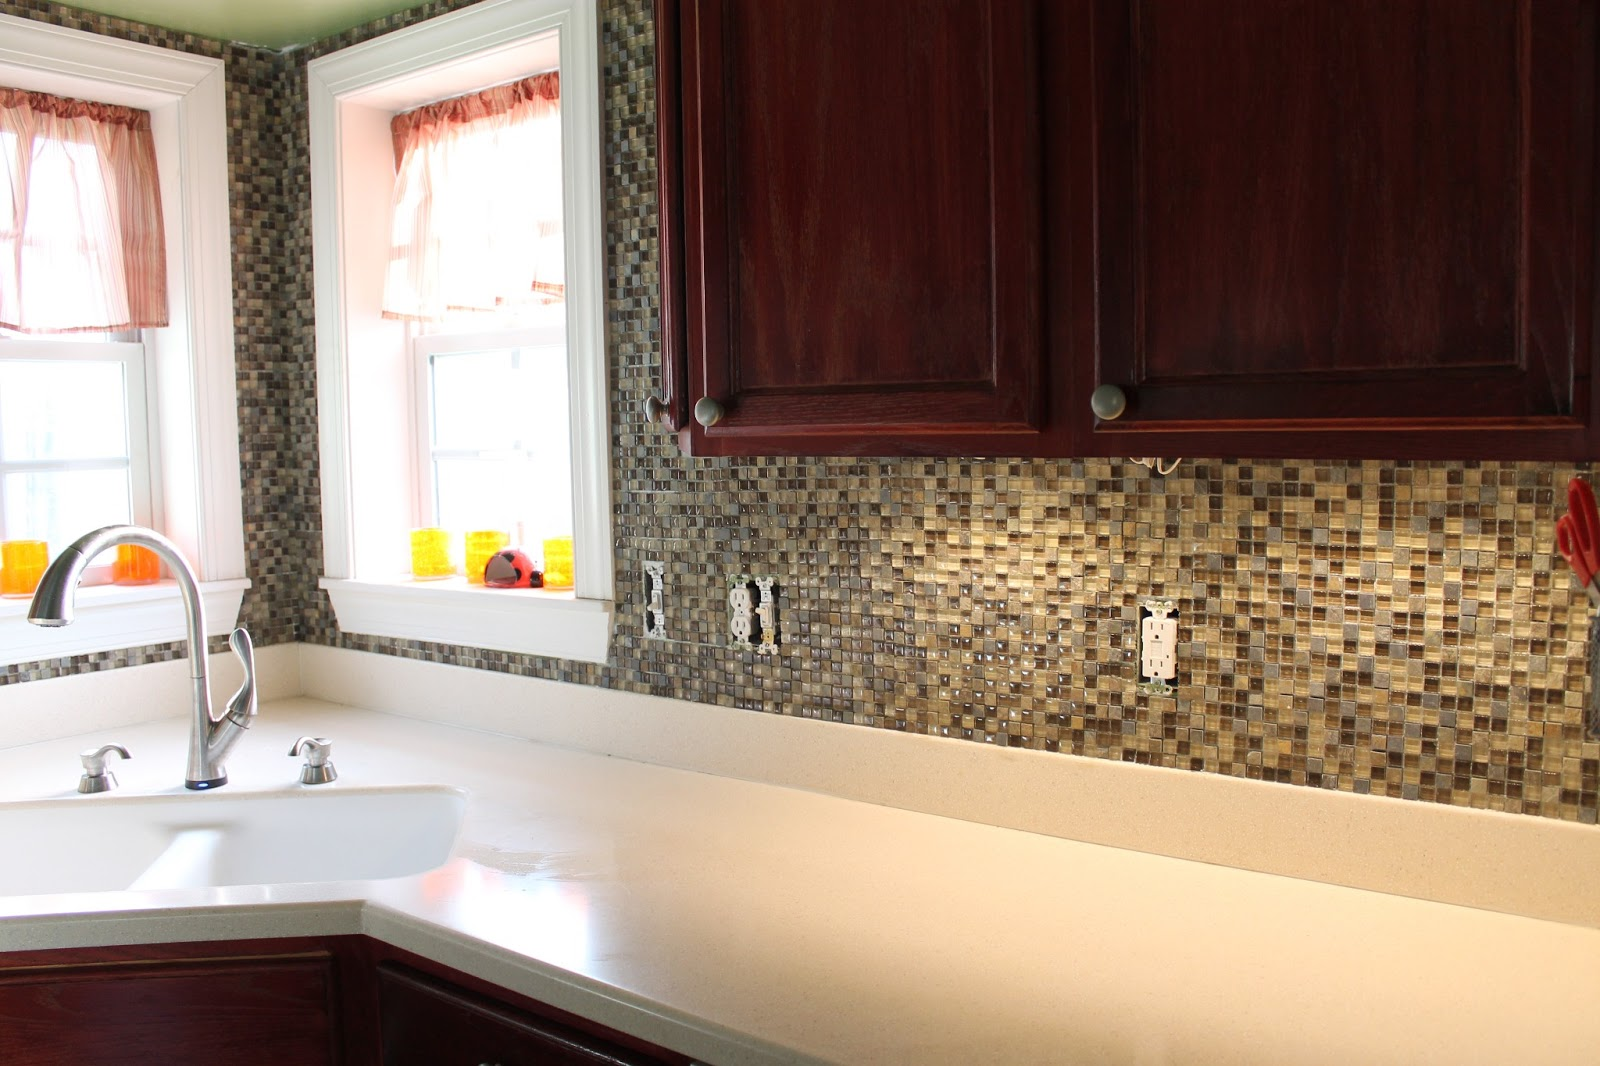 Cheap Unique Backsplash Ideas How To Put Up A Backsplash In Kitchen